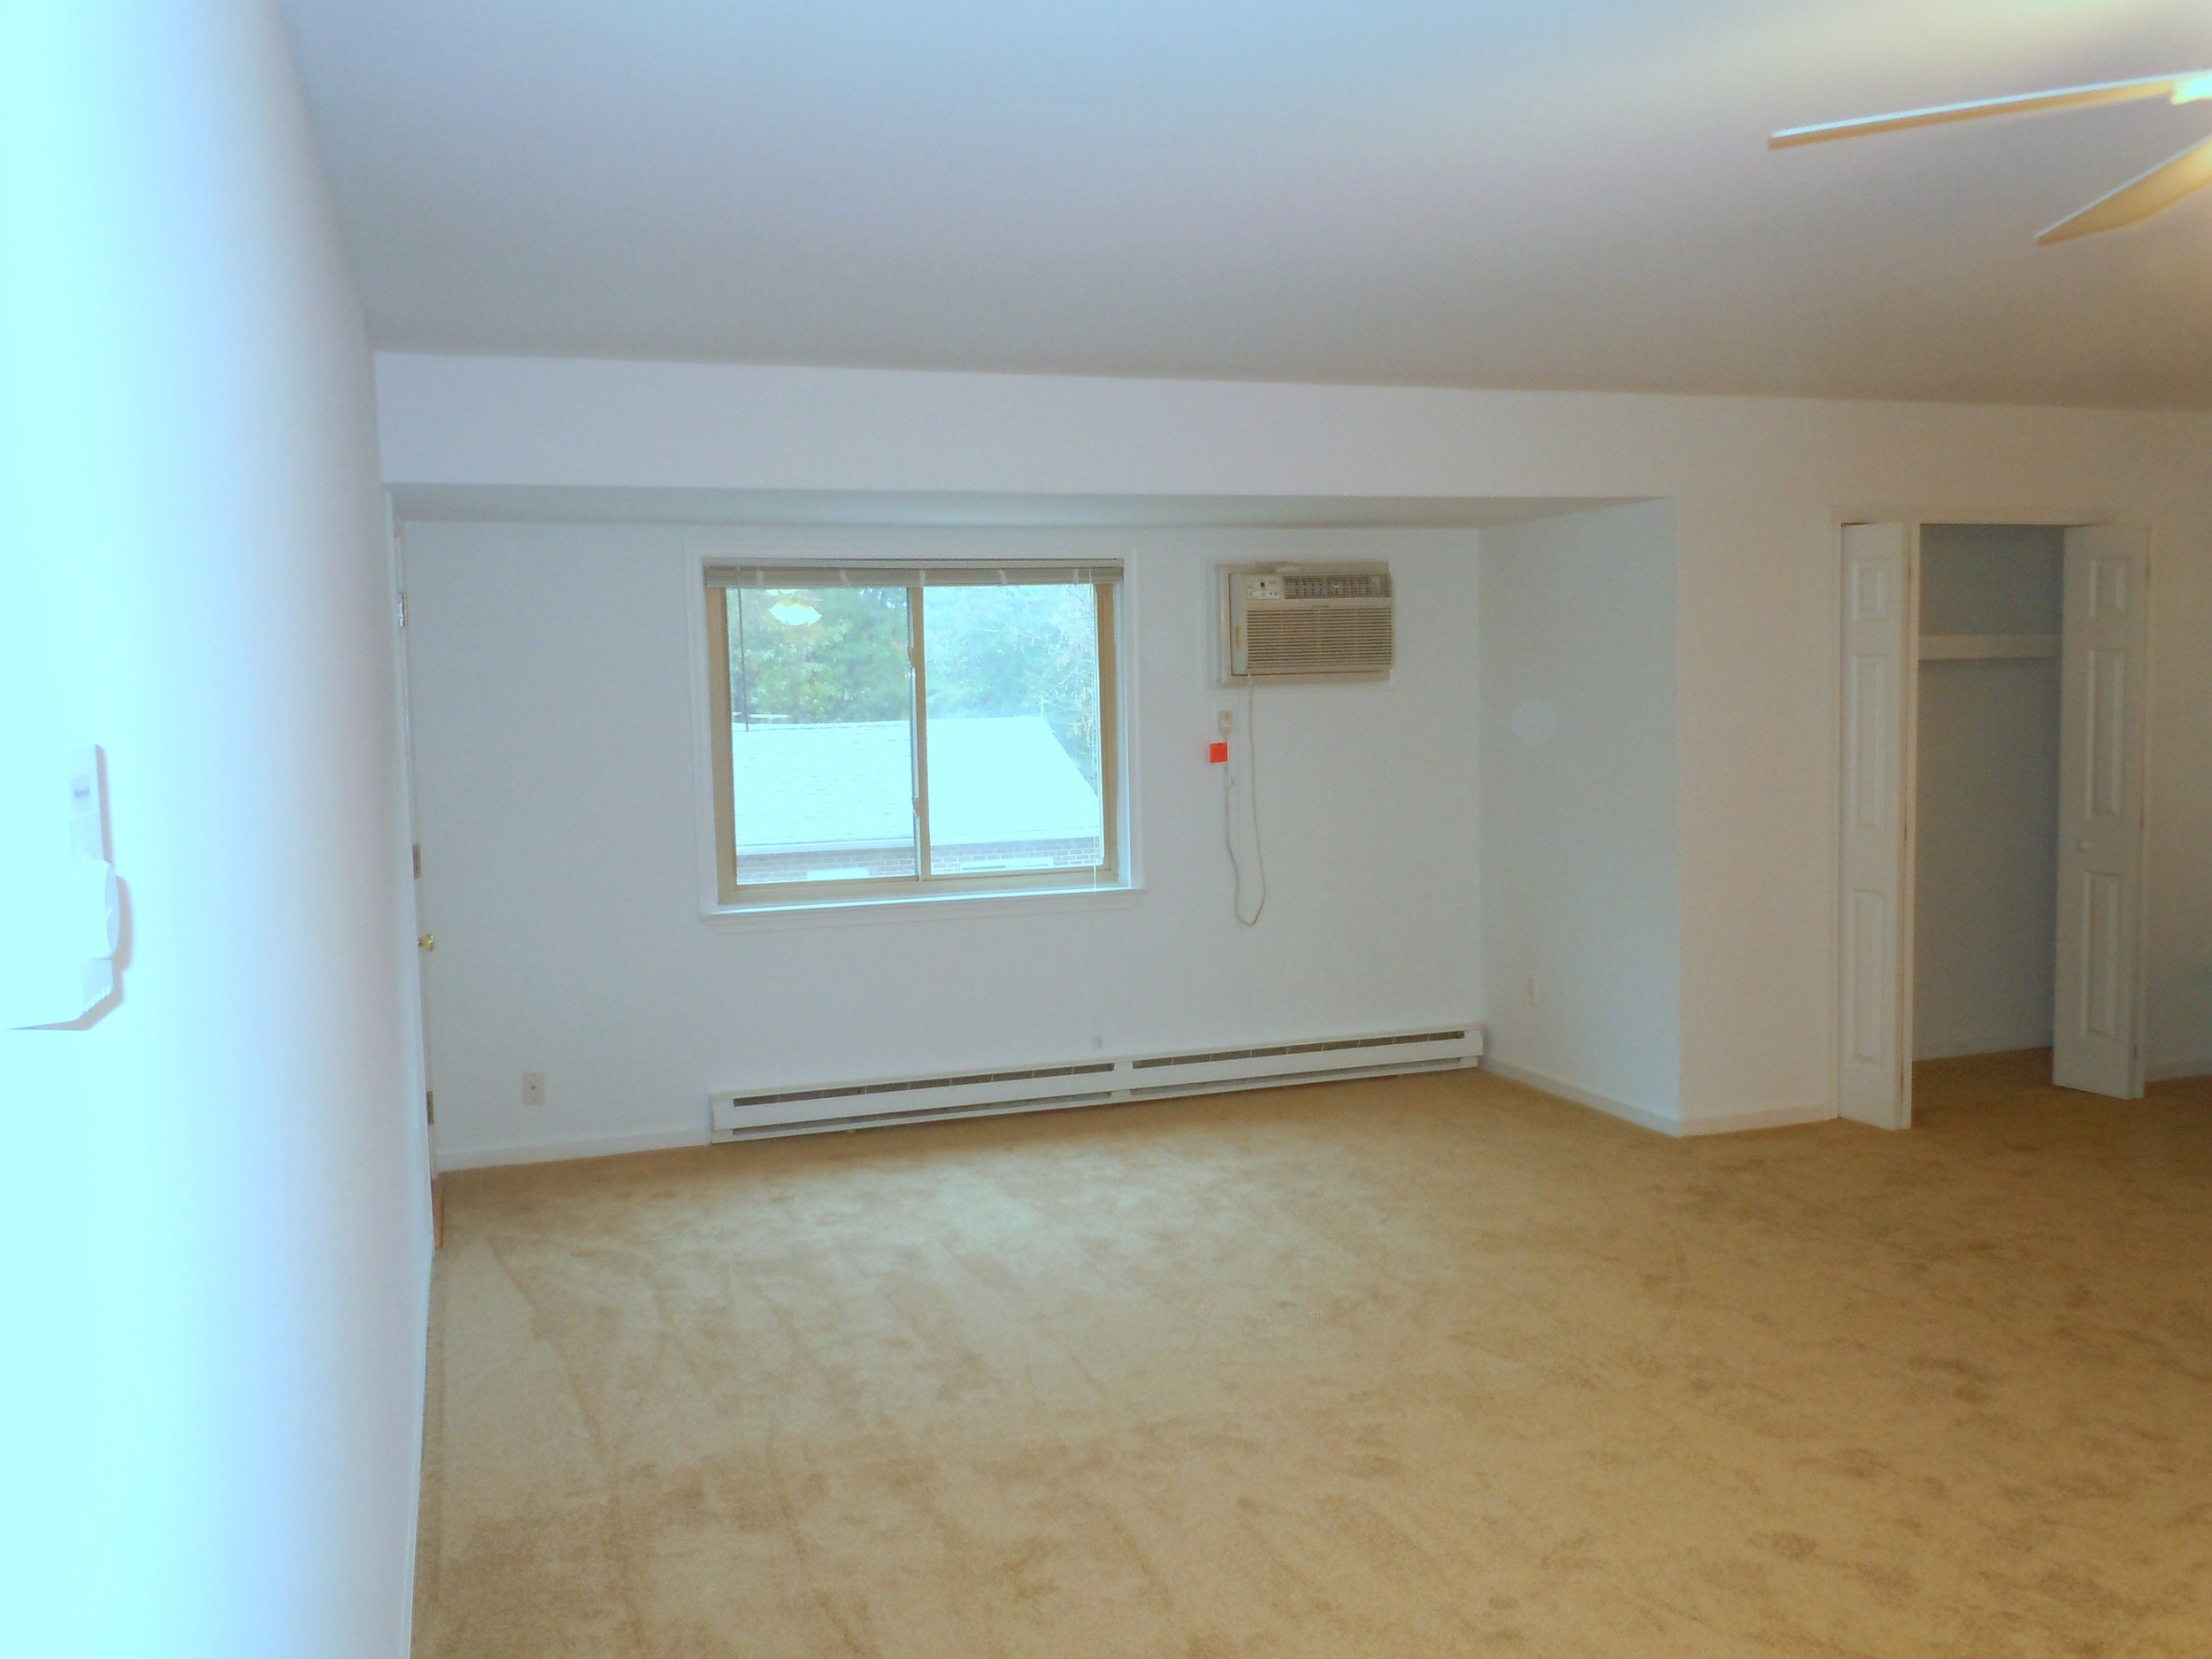 1 & 2 bedrm upstairs living rm - image #3.JPG